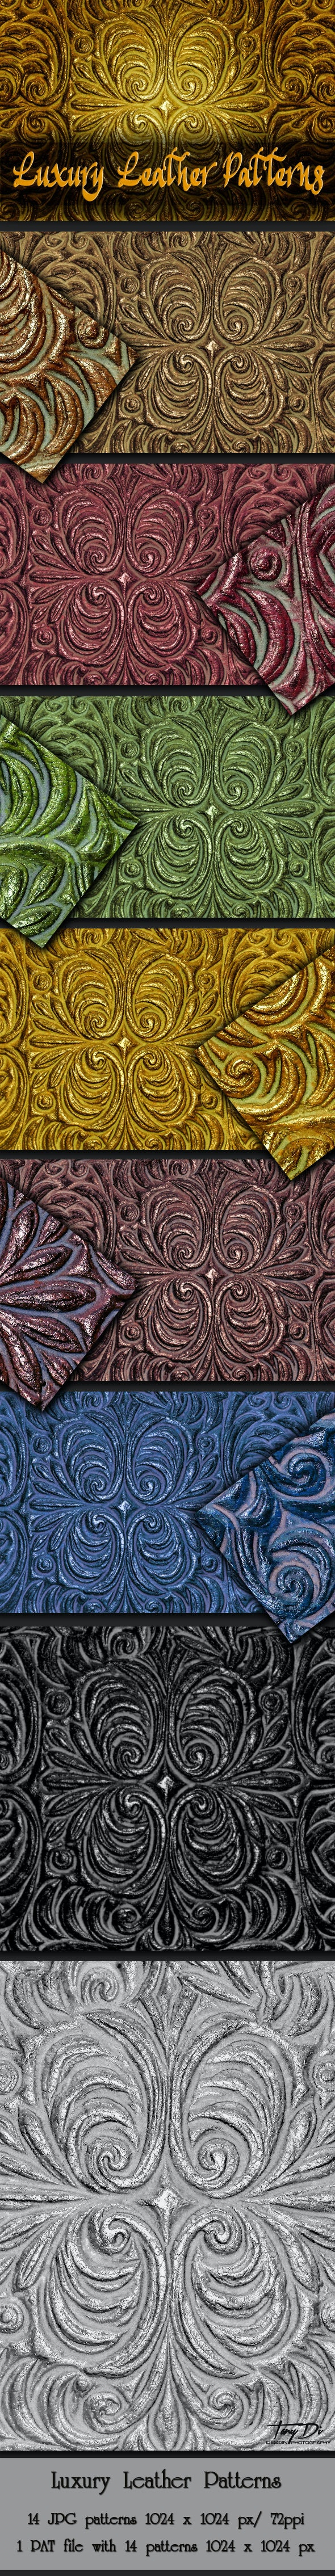 Luxury Decorative Leather Patterns - Miscellaneous Textures / Fills / Patterns